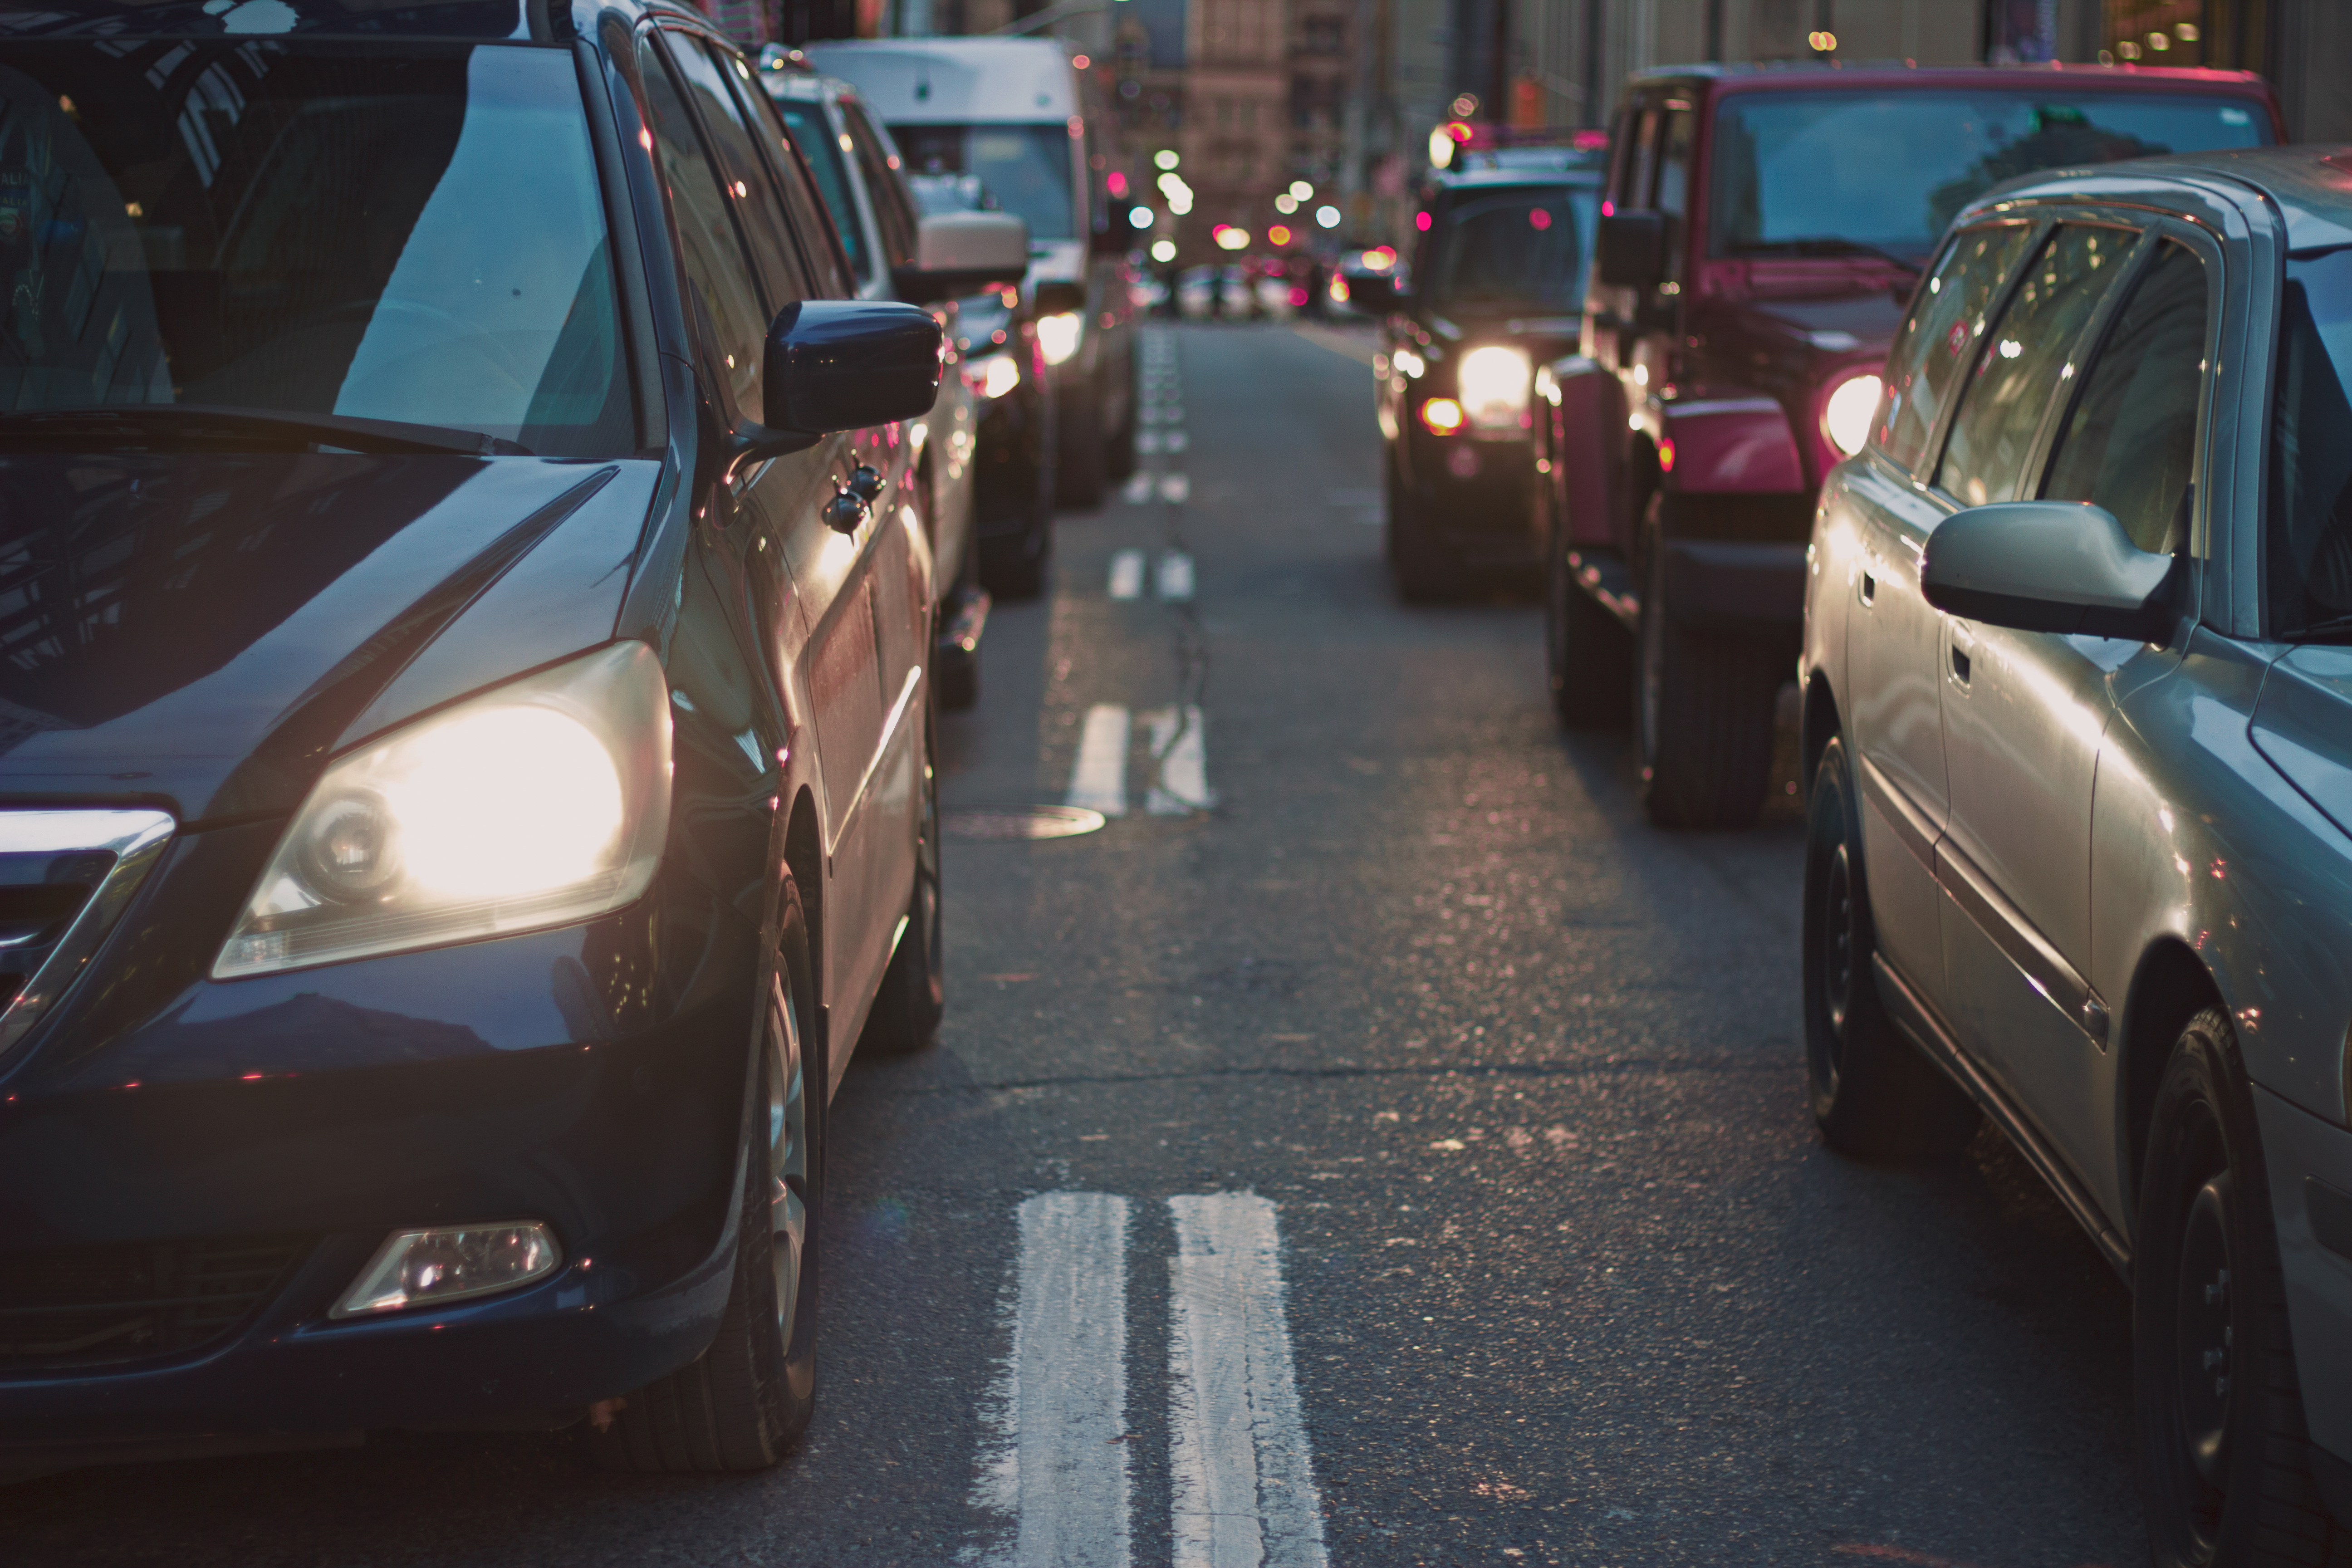 Free stock photo of cars, traffic, street, traffic jam